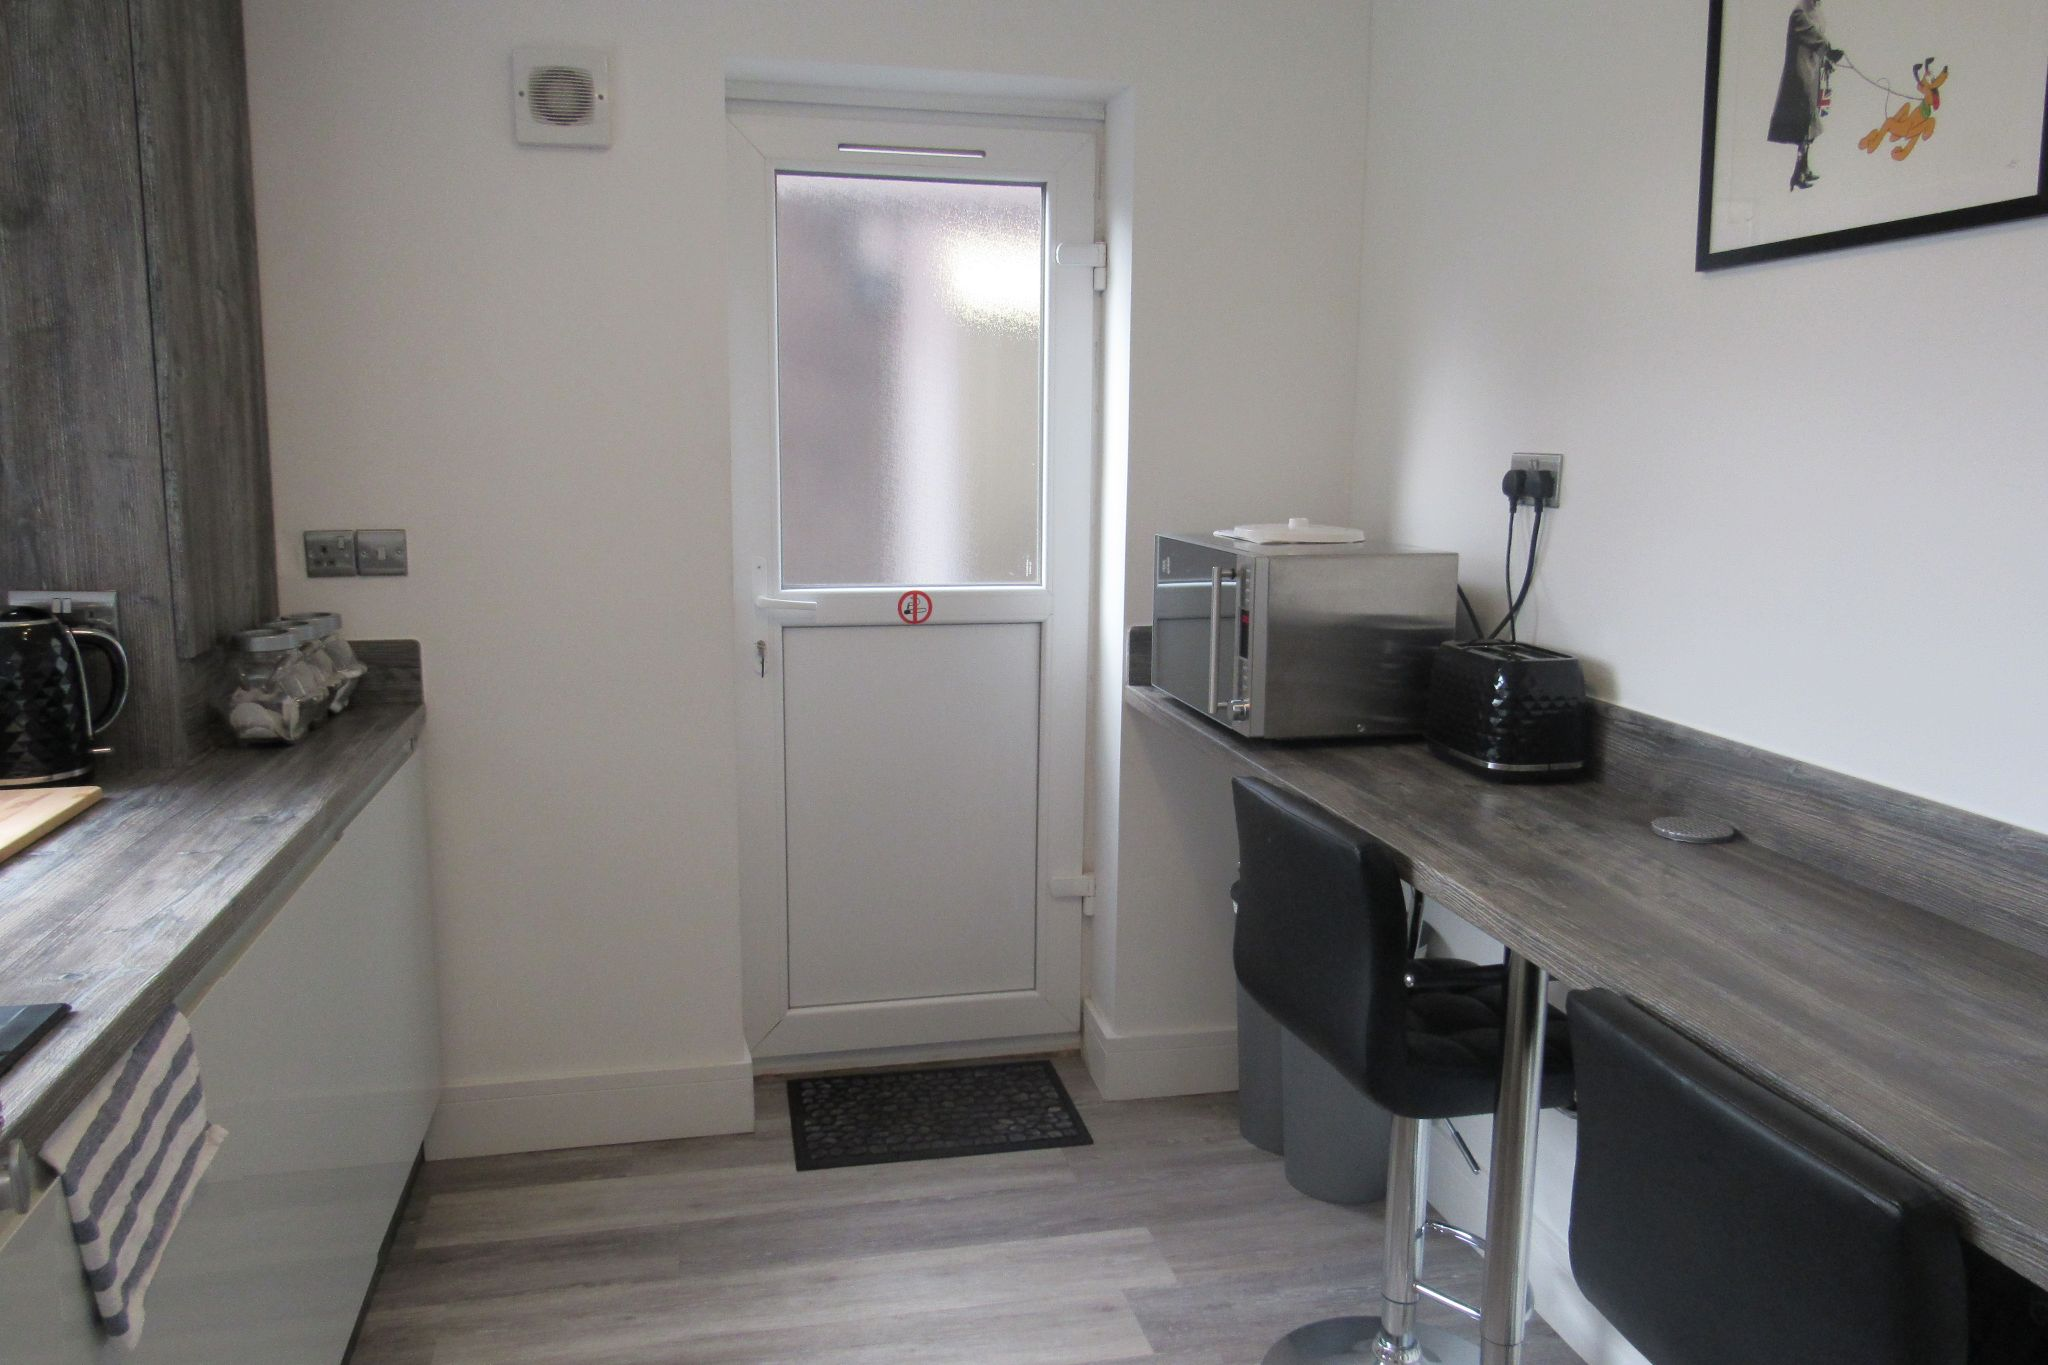 4 bedroom end terraced house SSTC in Manchester - Photograph 1.